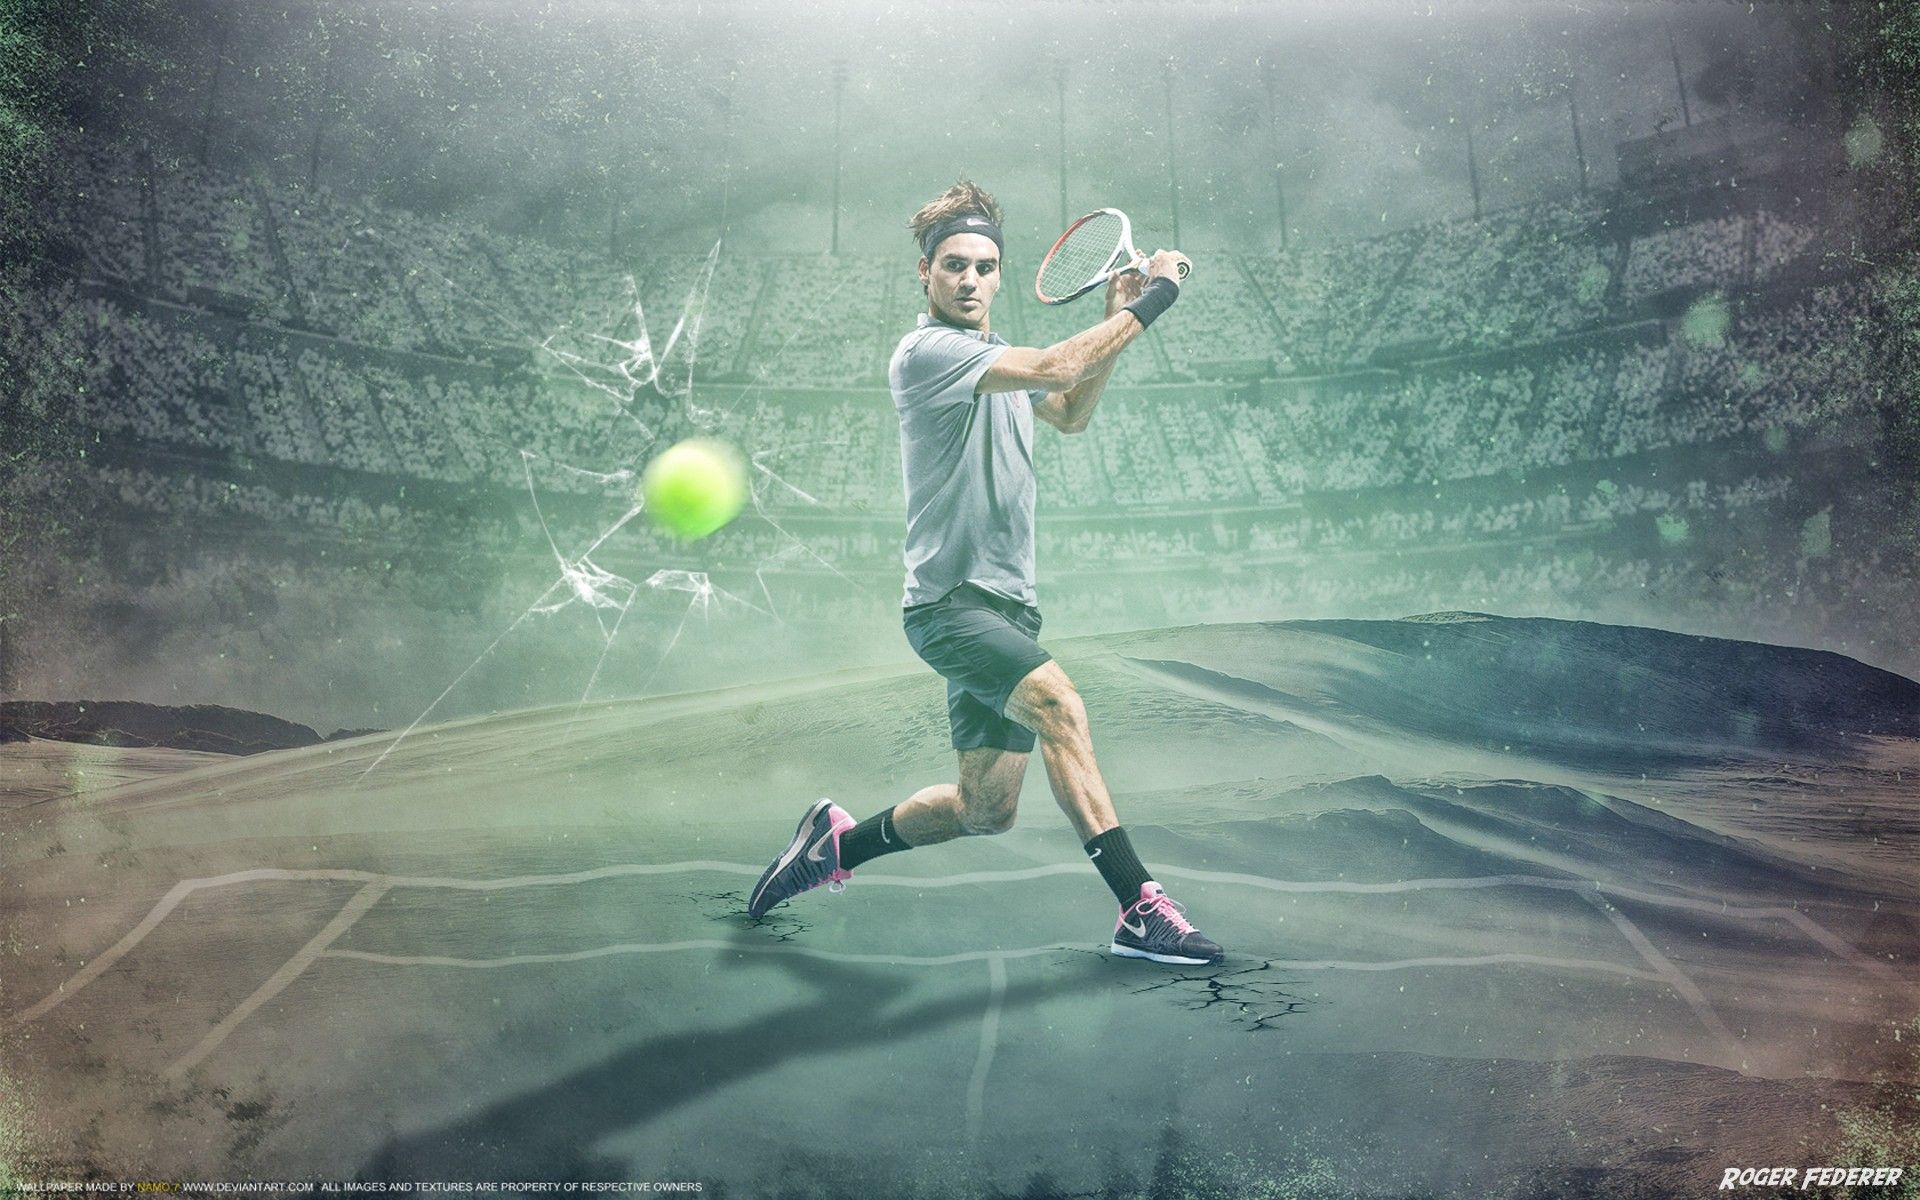 Roger Federer Tennis Player Stylish Image wallpaper Best HD 1920x1200